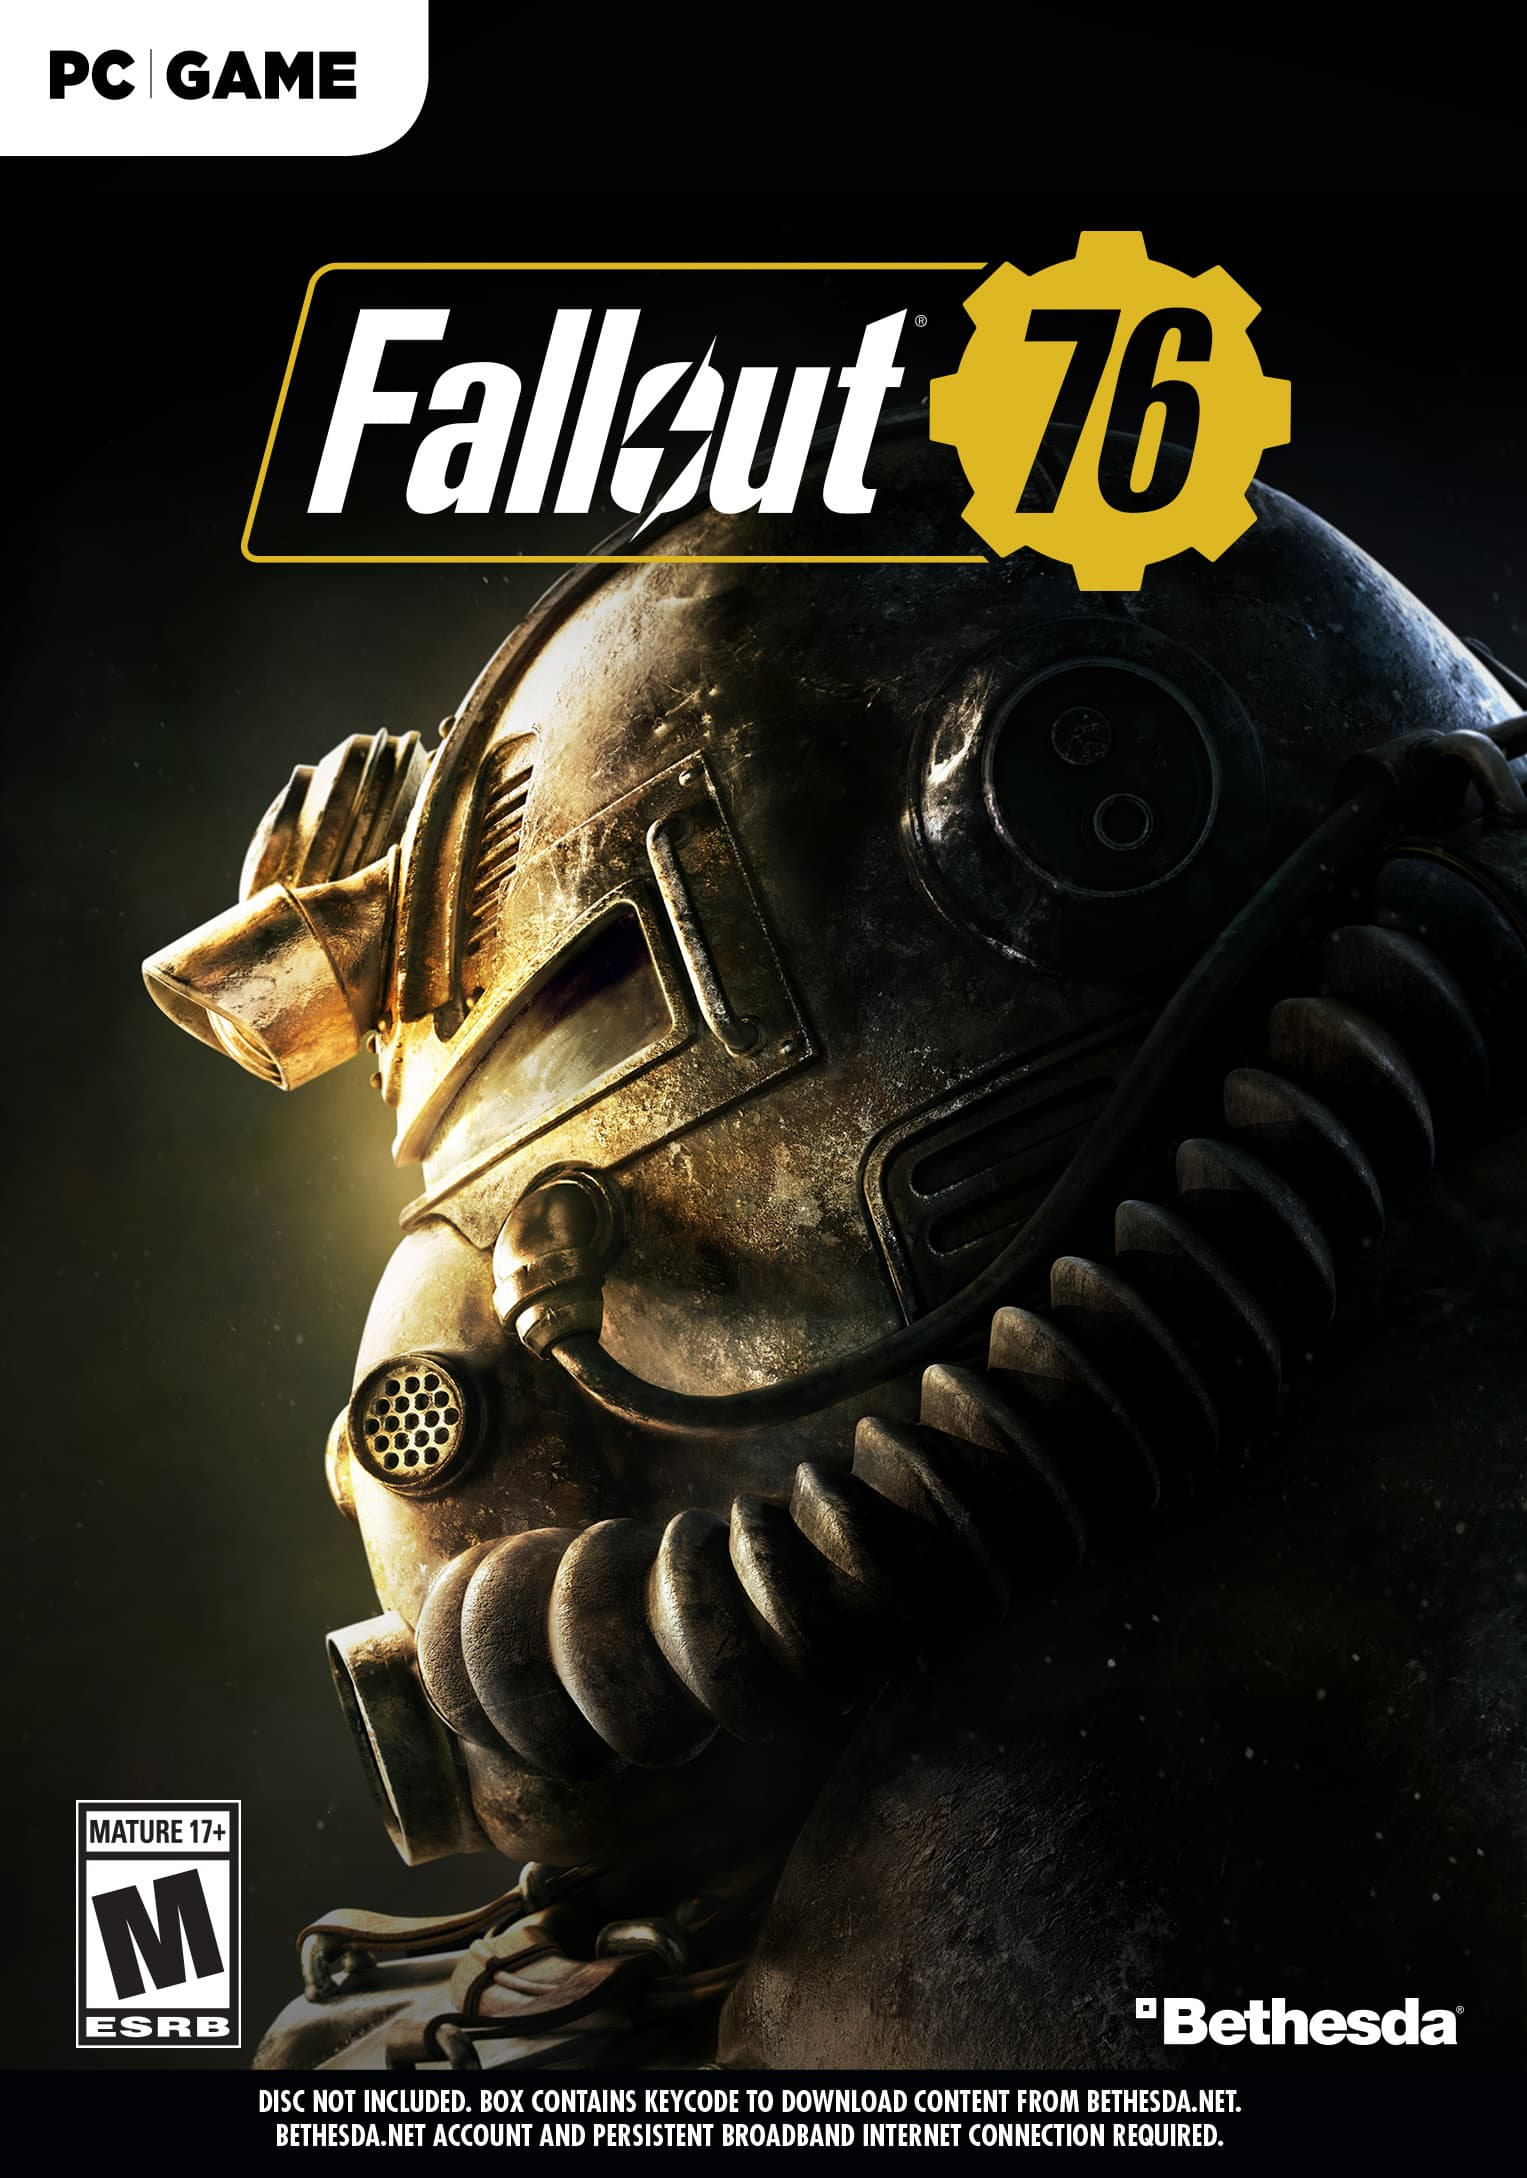 Fallout 76 PC $17 at Walmart com - Slickdeals net